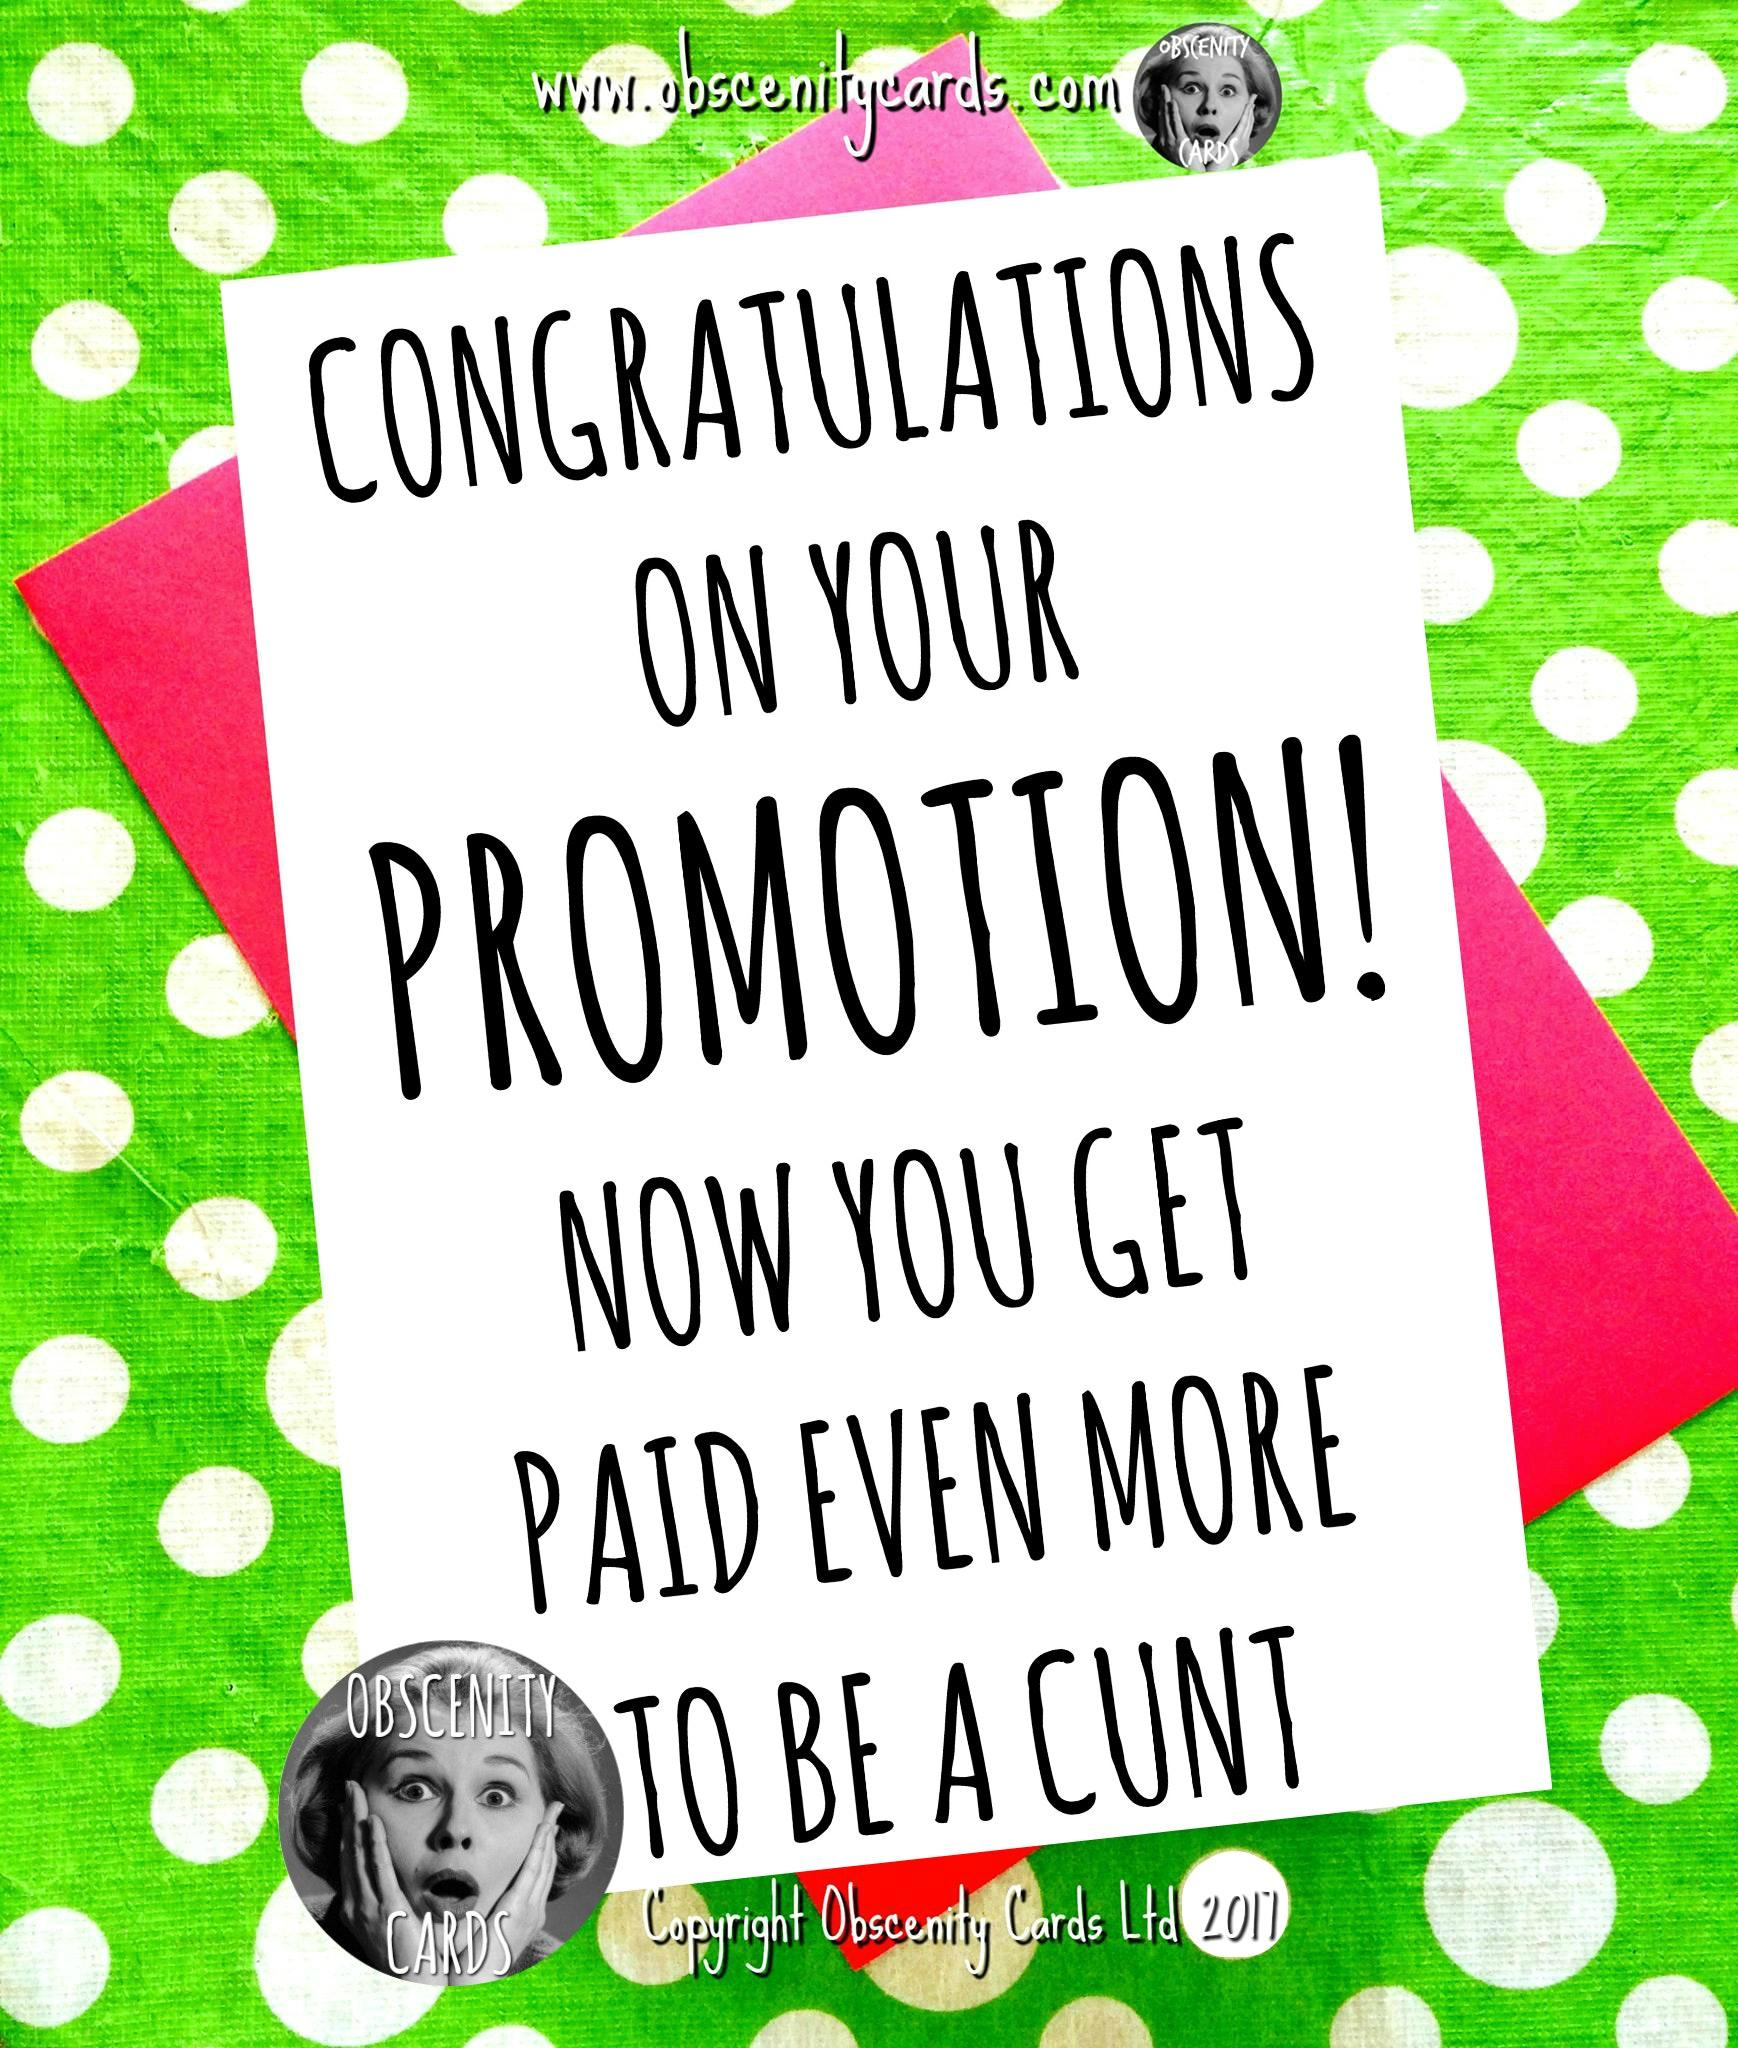 congratulations on your promotion now you get paid even more to be